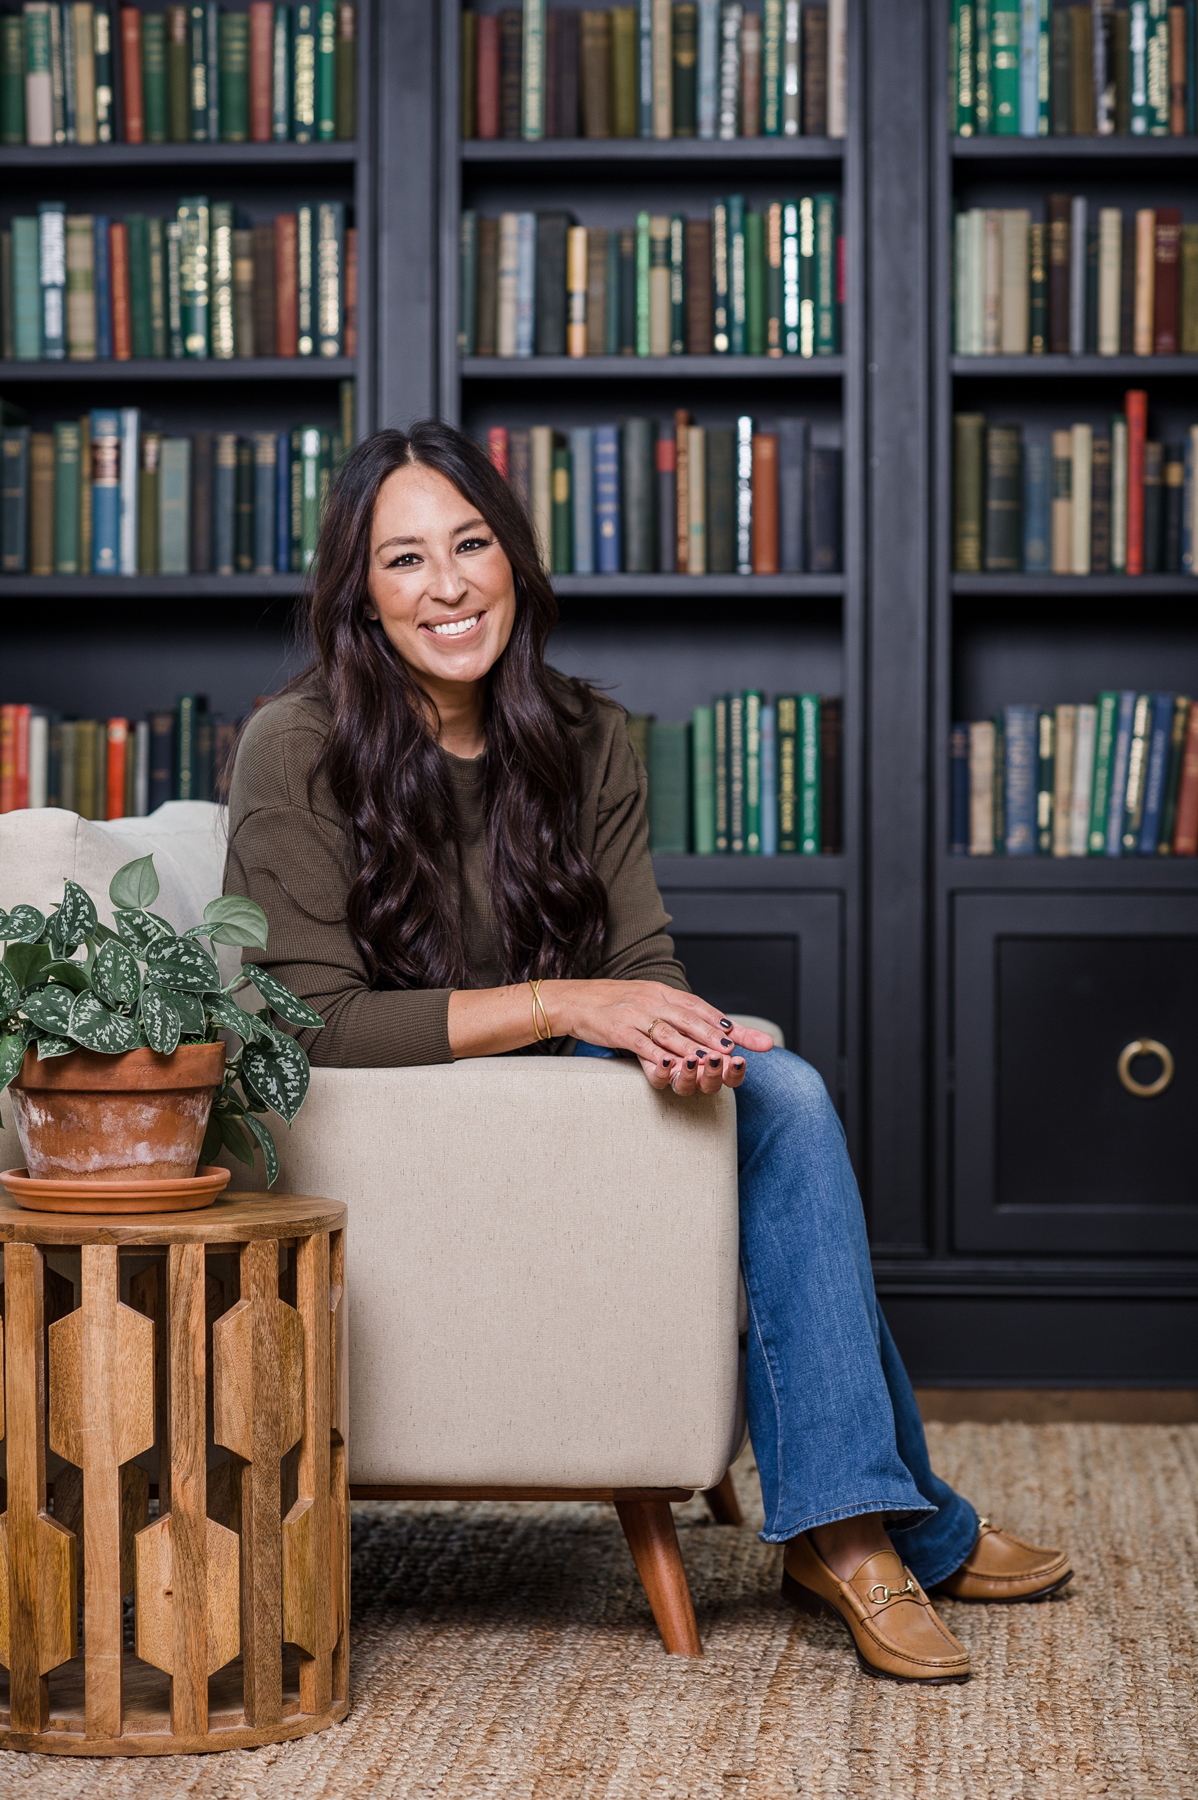 Remarkable, pussy joanna gaines has surprised